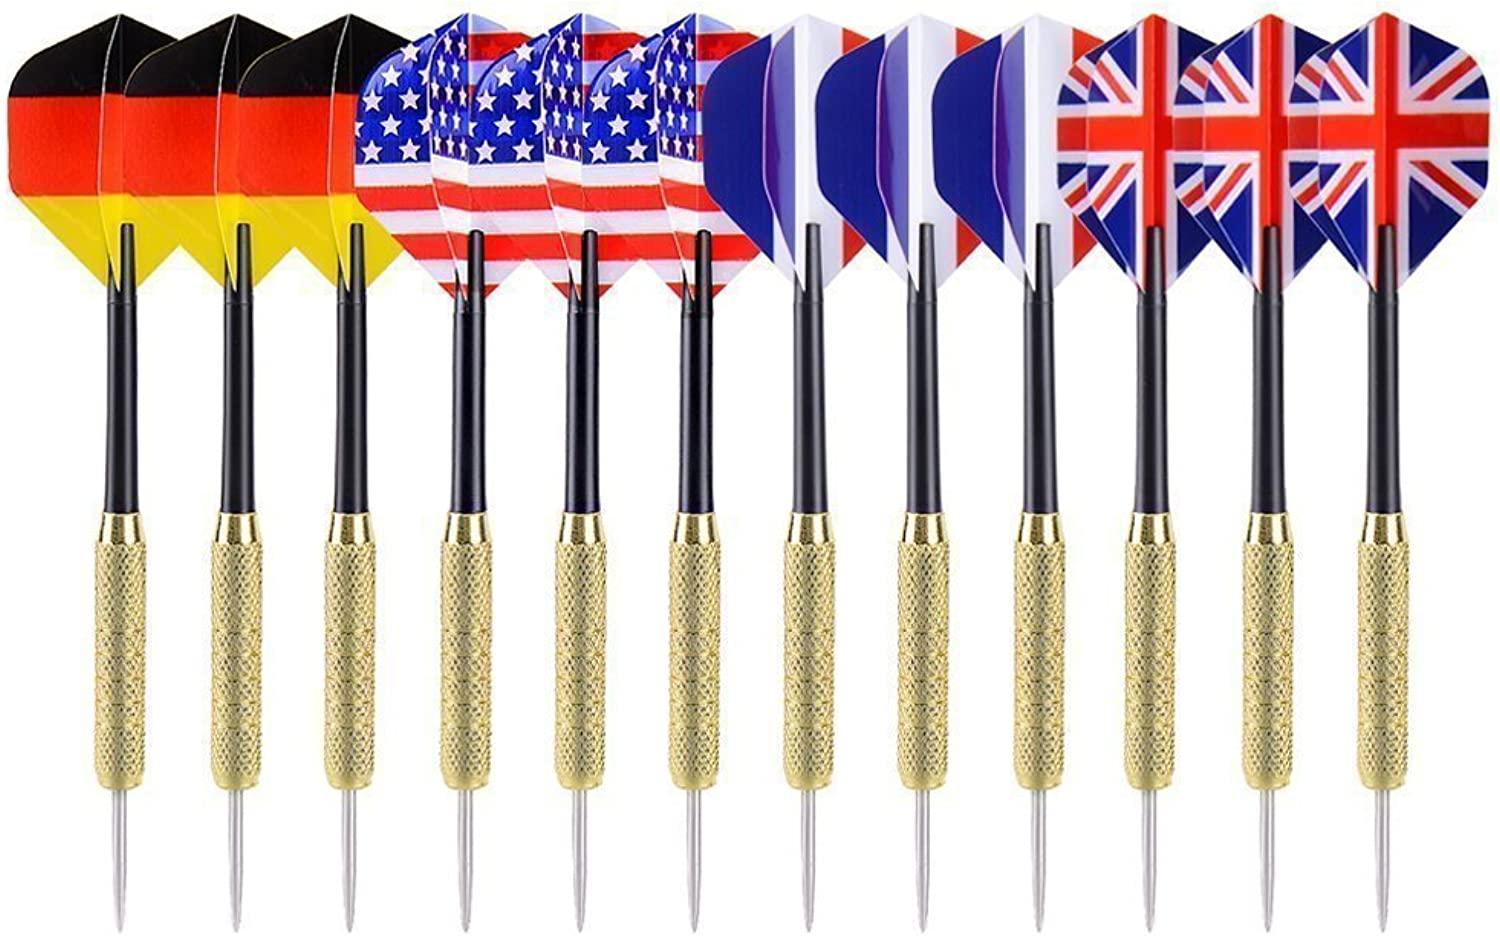 Maleap 12pcs 18inch Stylish & Fun Designs Tip Darts with four Styles National Flag Flights Stainless Steel Needle for Beginners